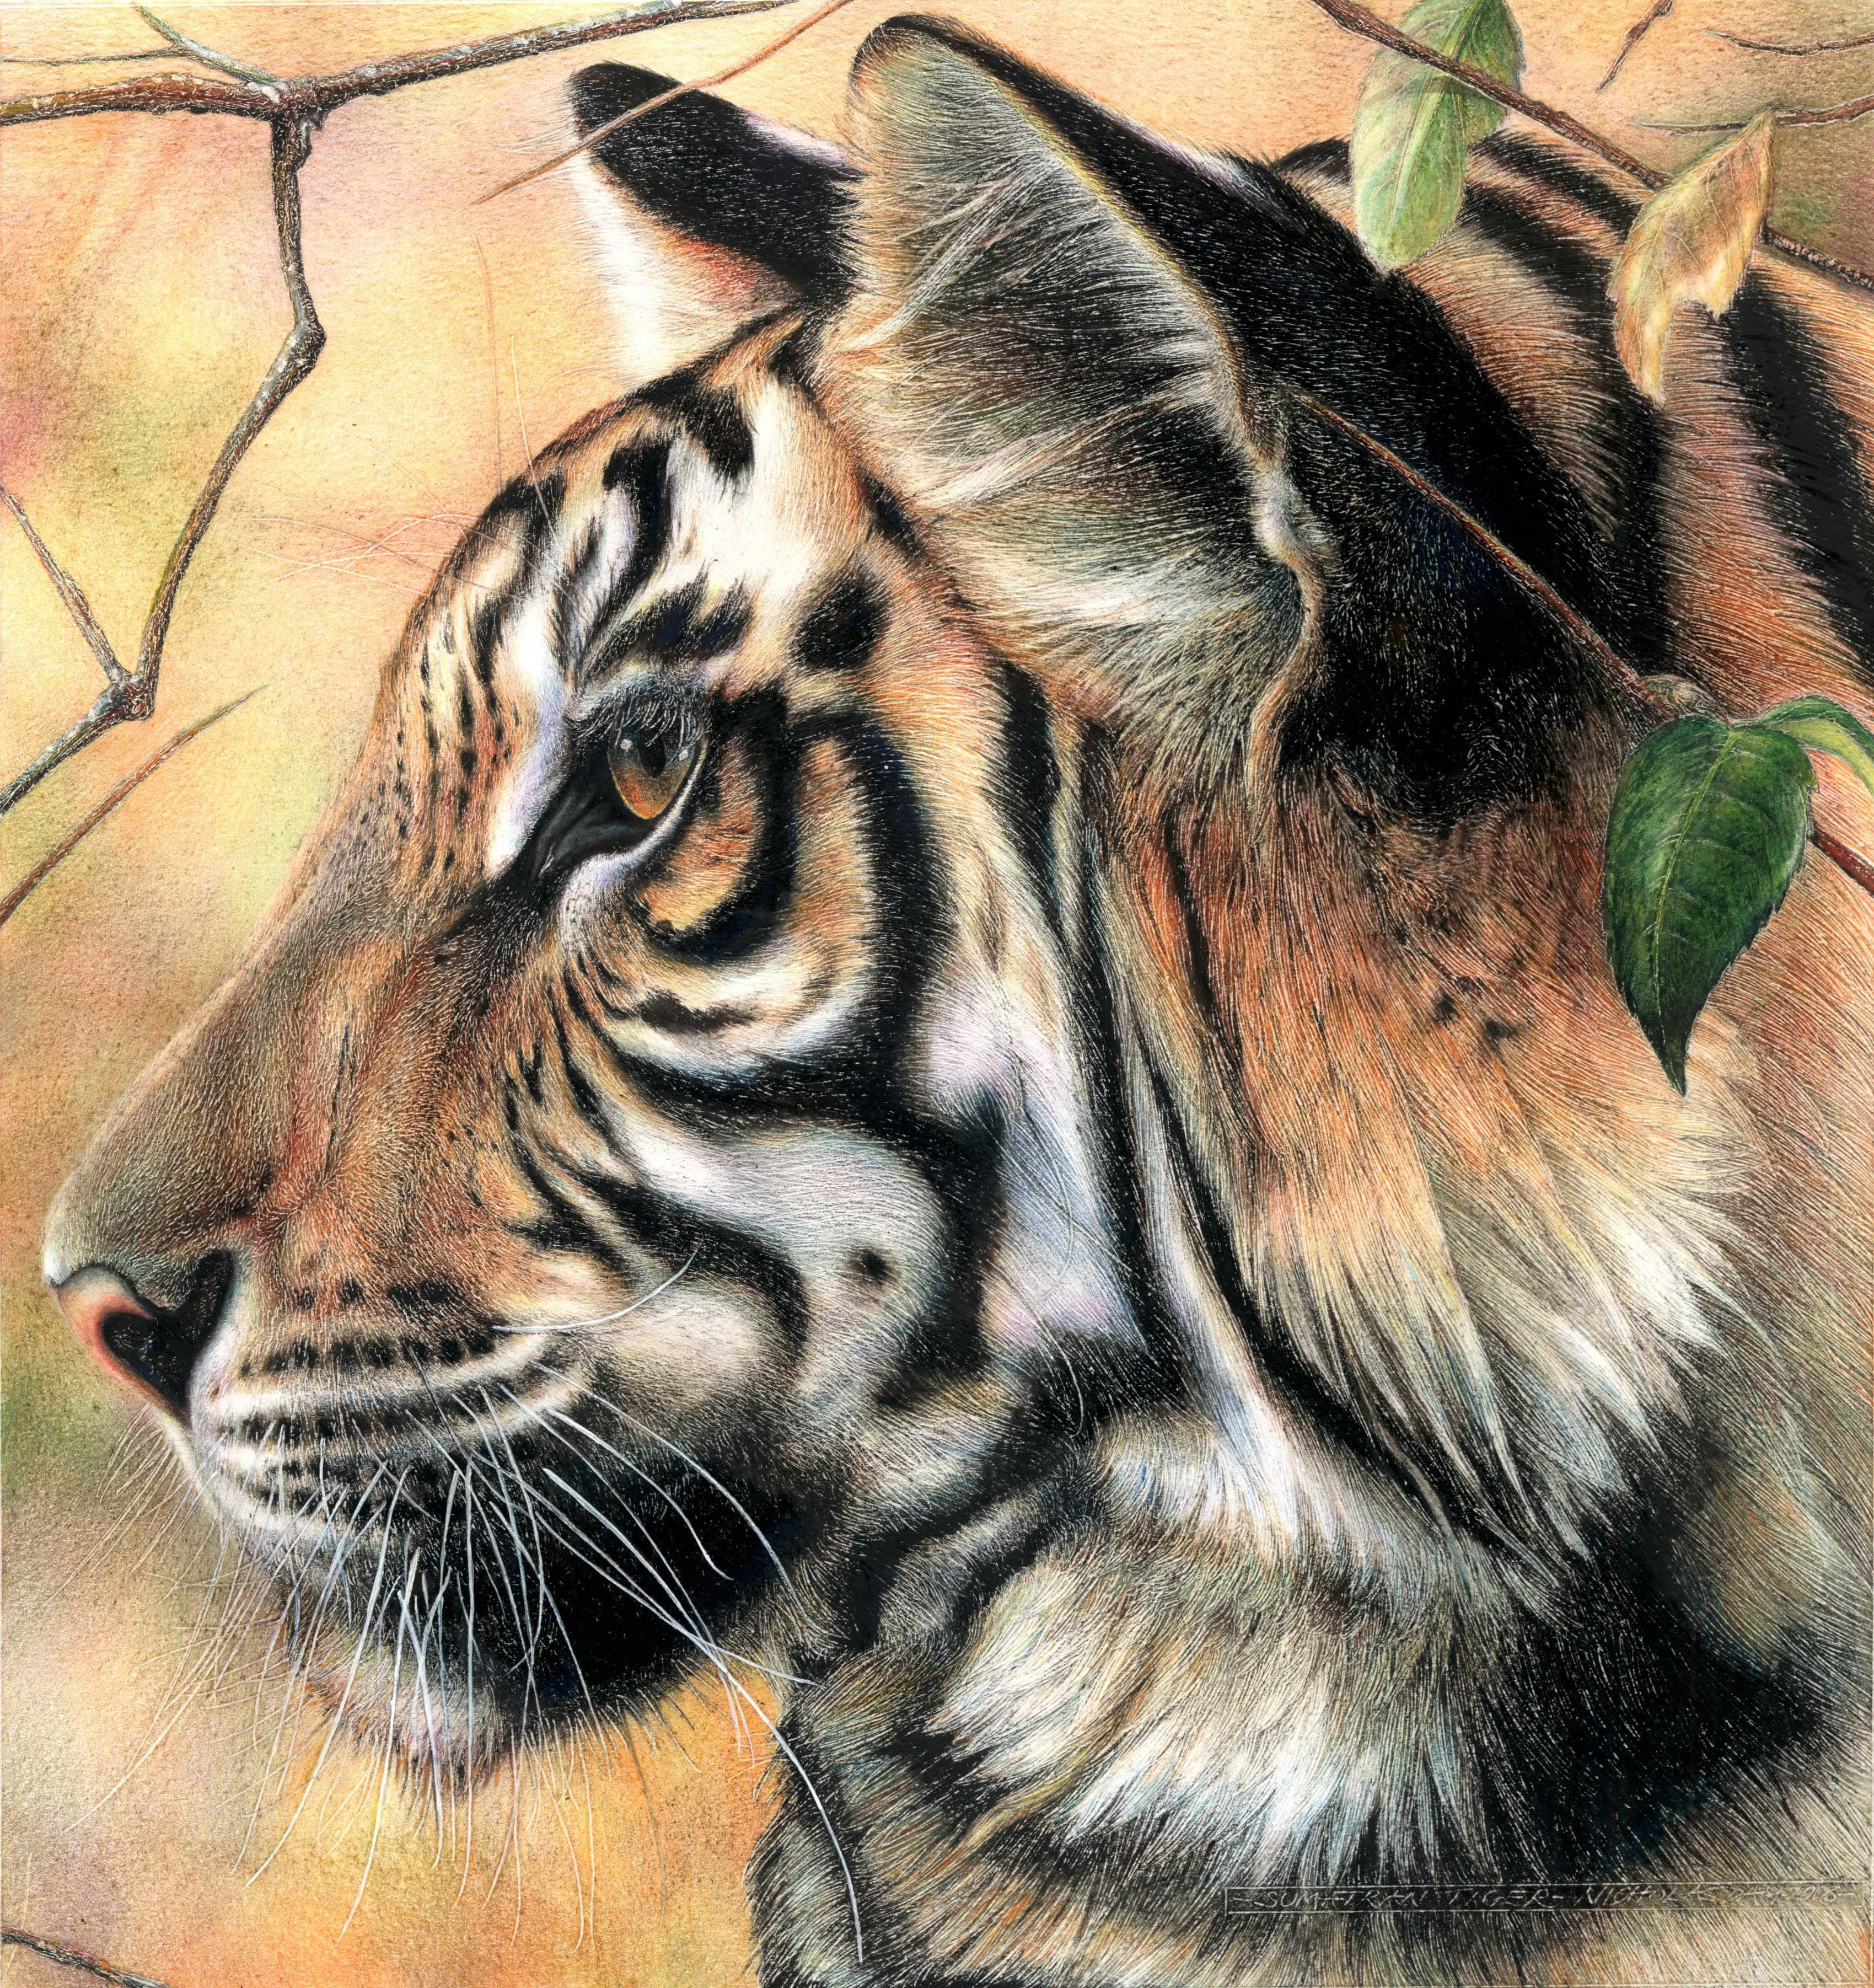 Related with Wildlife Art Gallery, here are several great